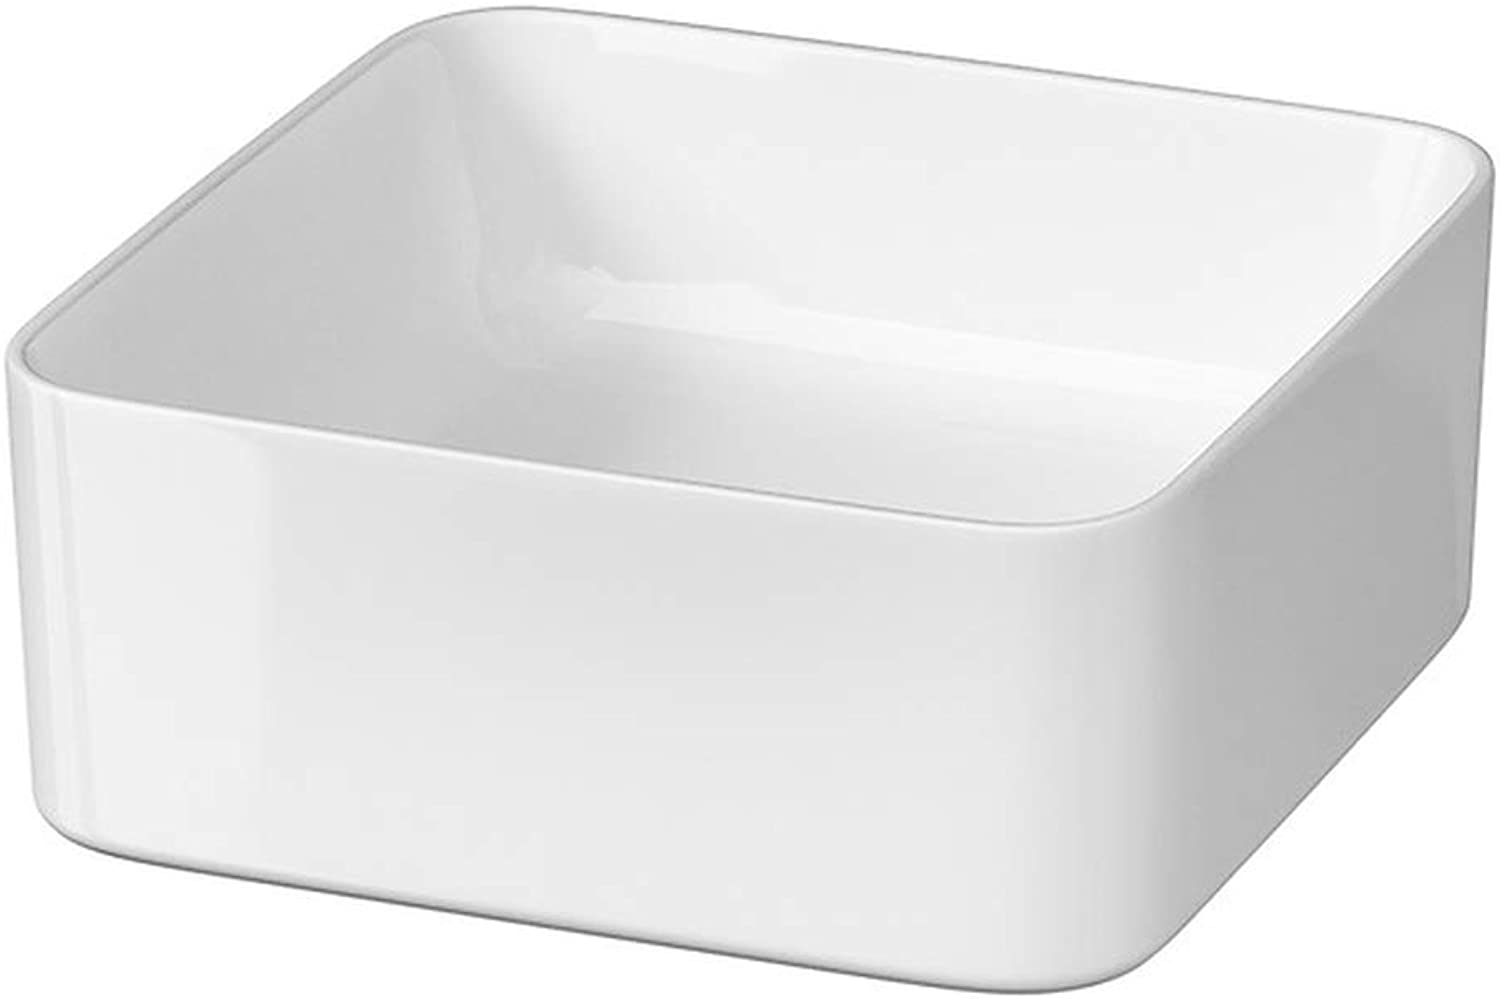 VBChome Modo Collection Ceramic Wash Basin Design Countertop Wash Basin for Bathroom Guest Toilet, White